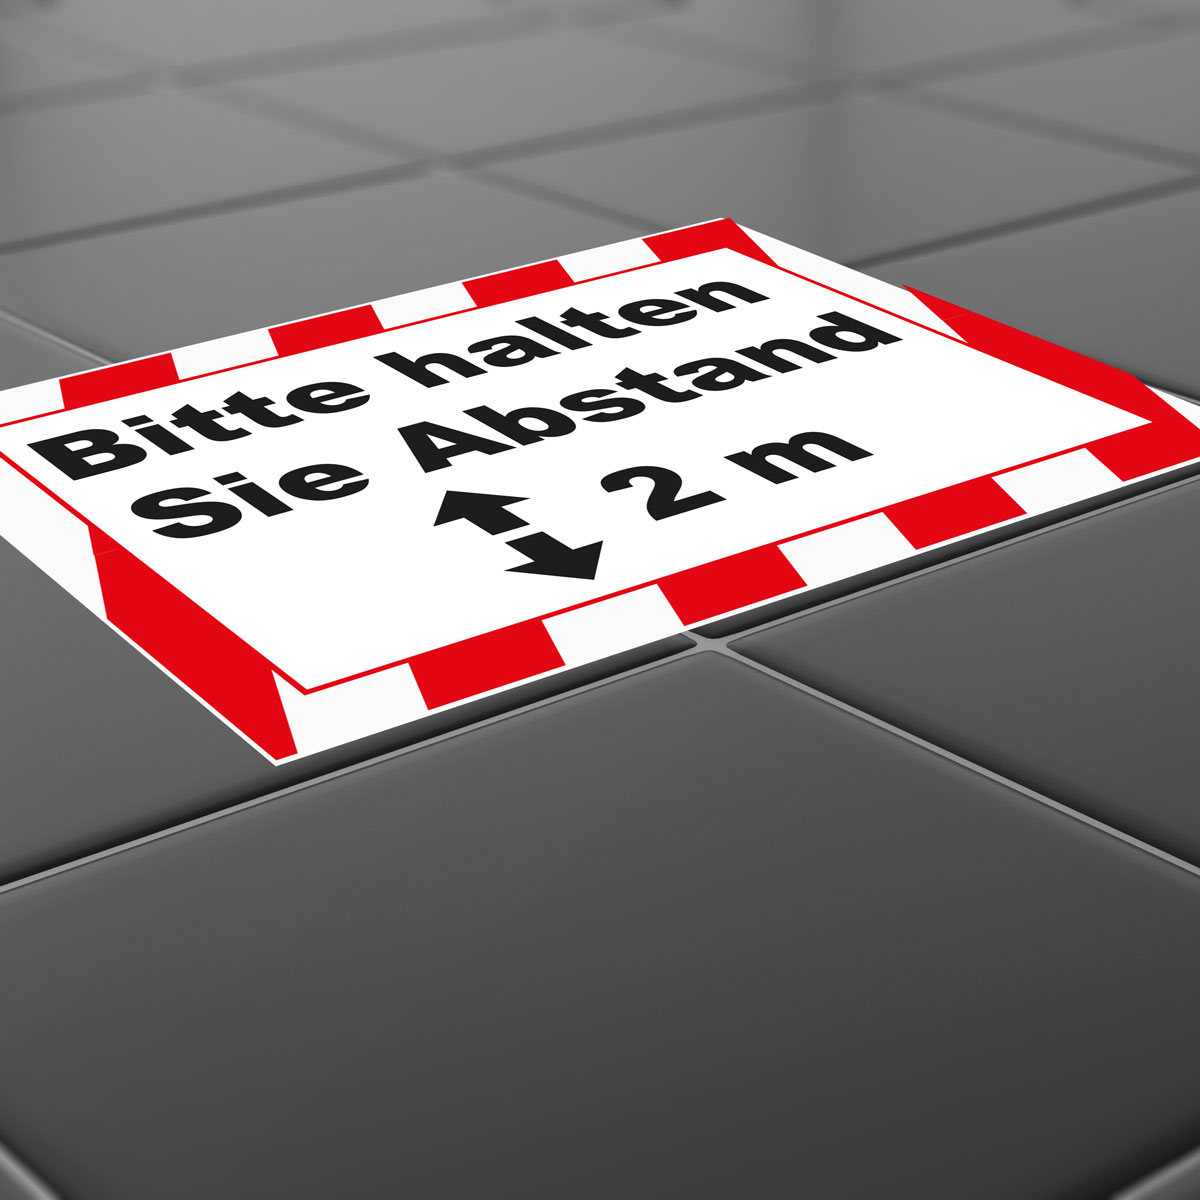 Floor sticker with indication of safety distance